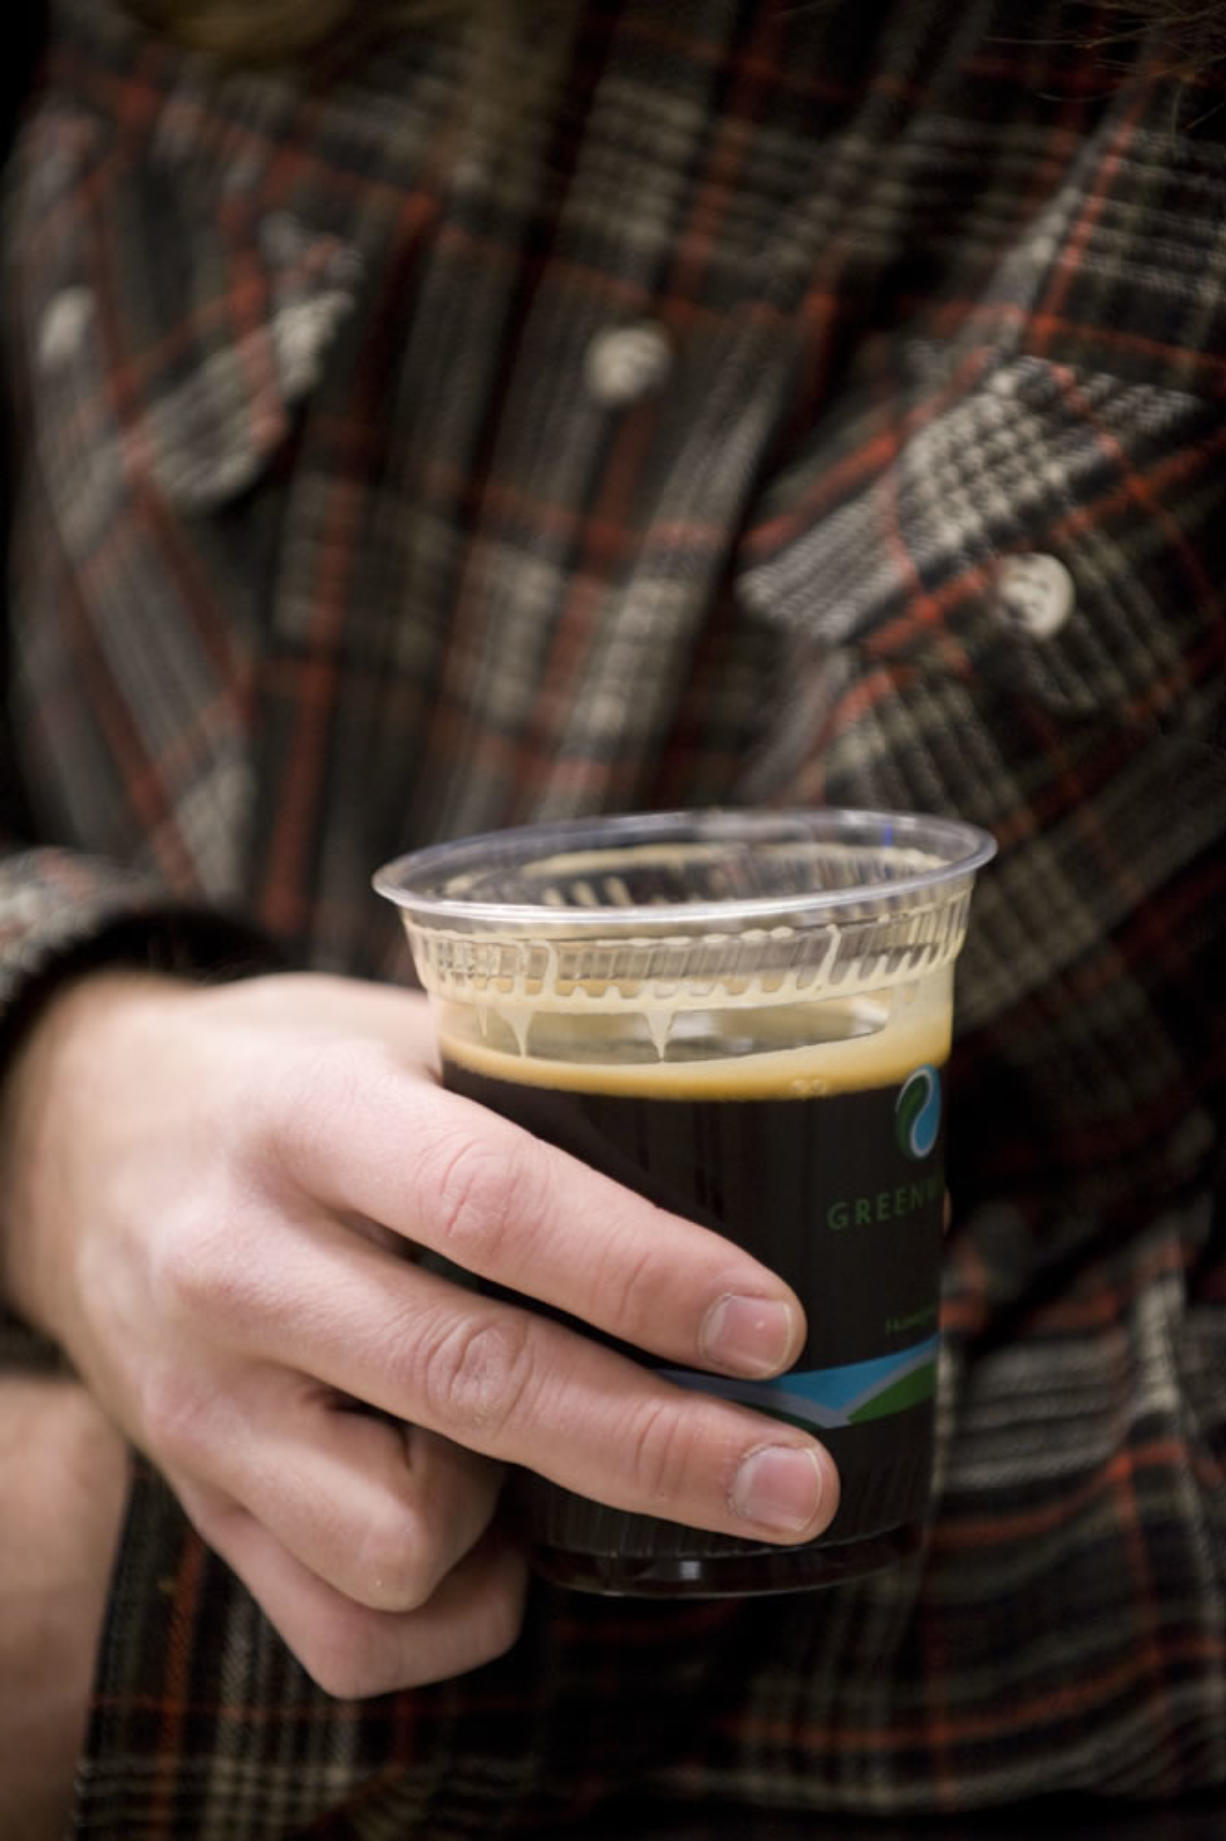 Loowit Brewing Co. and Torque Coffee Roasters have created a coffee stout beer together that they plan to release at Saturday's Drink This!